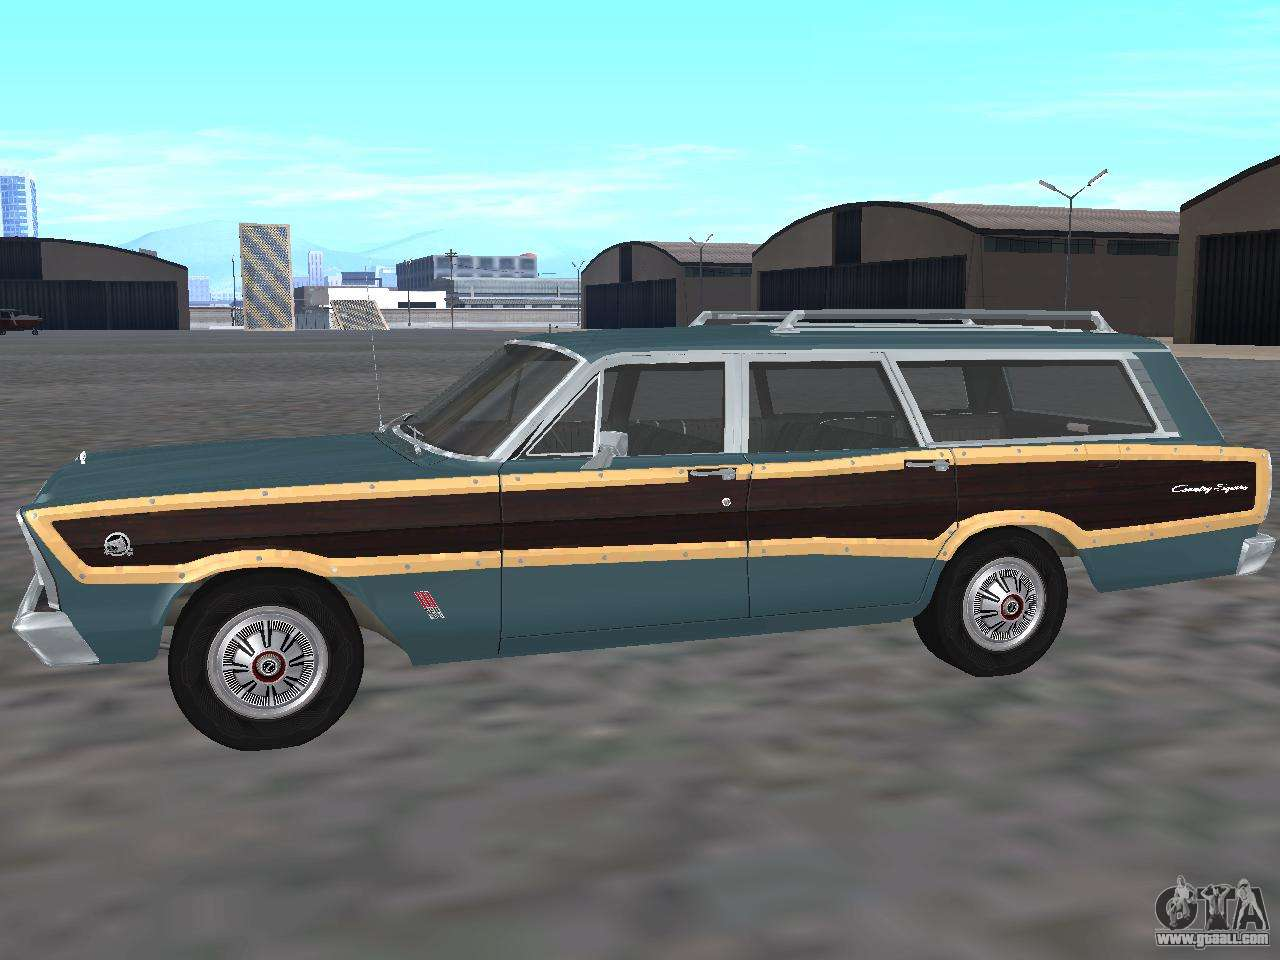 1966 ford country squire - photo #30